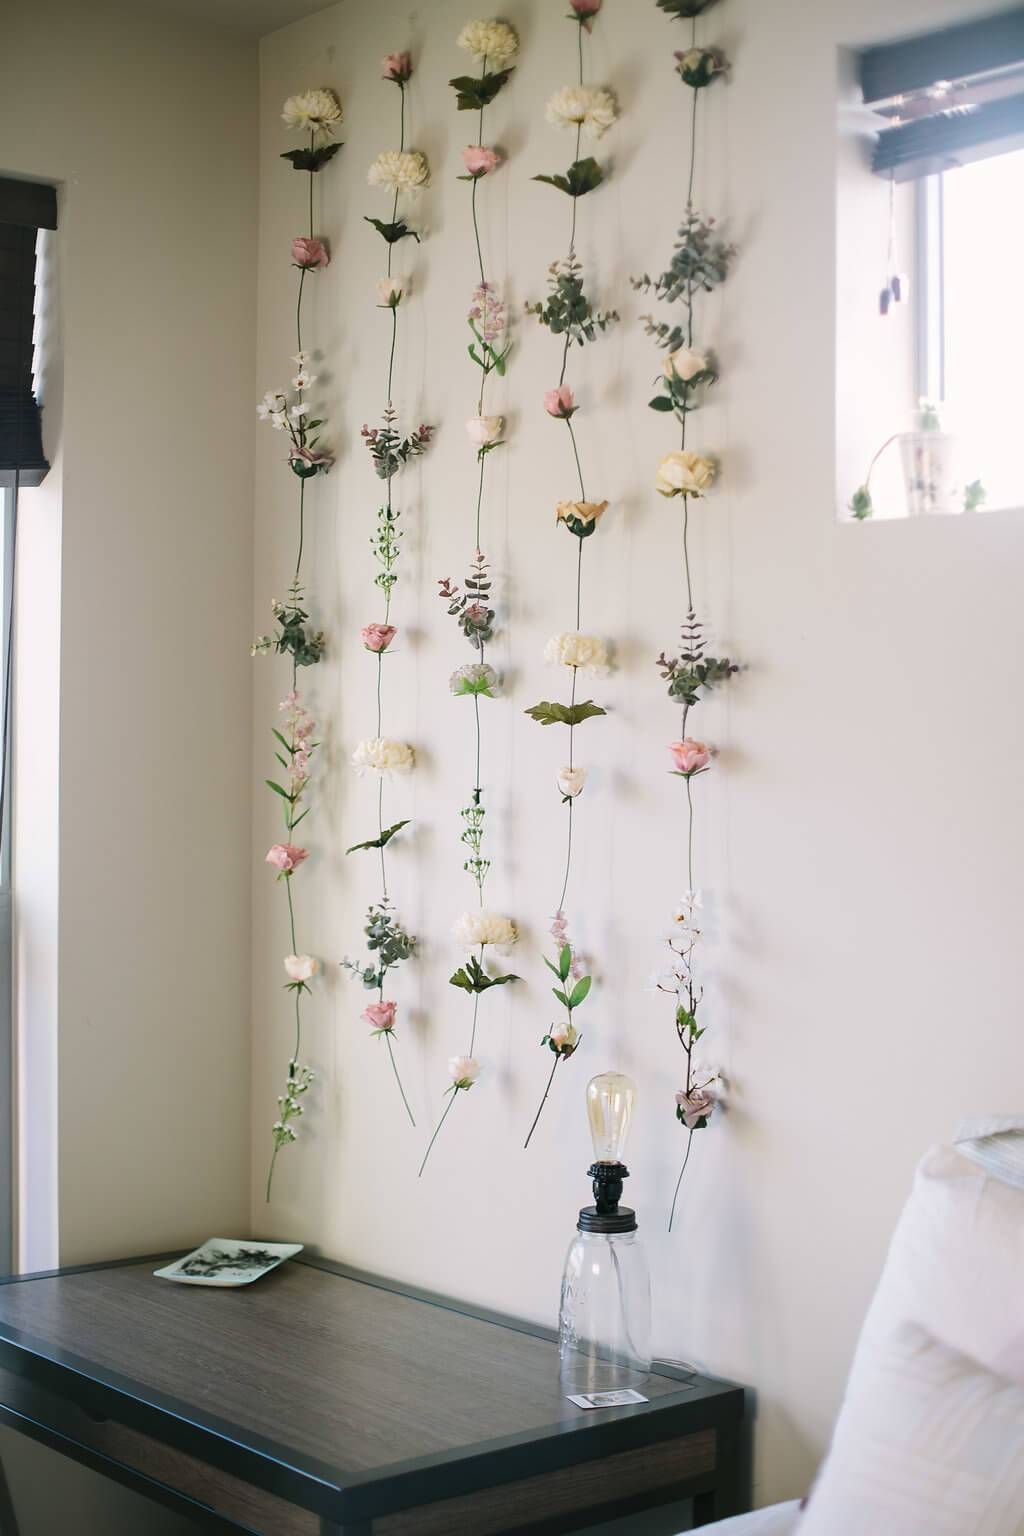 Diy Flower Wall Gemma Darr Room Ideas Diy Room Decor